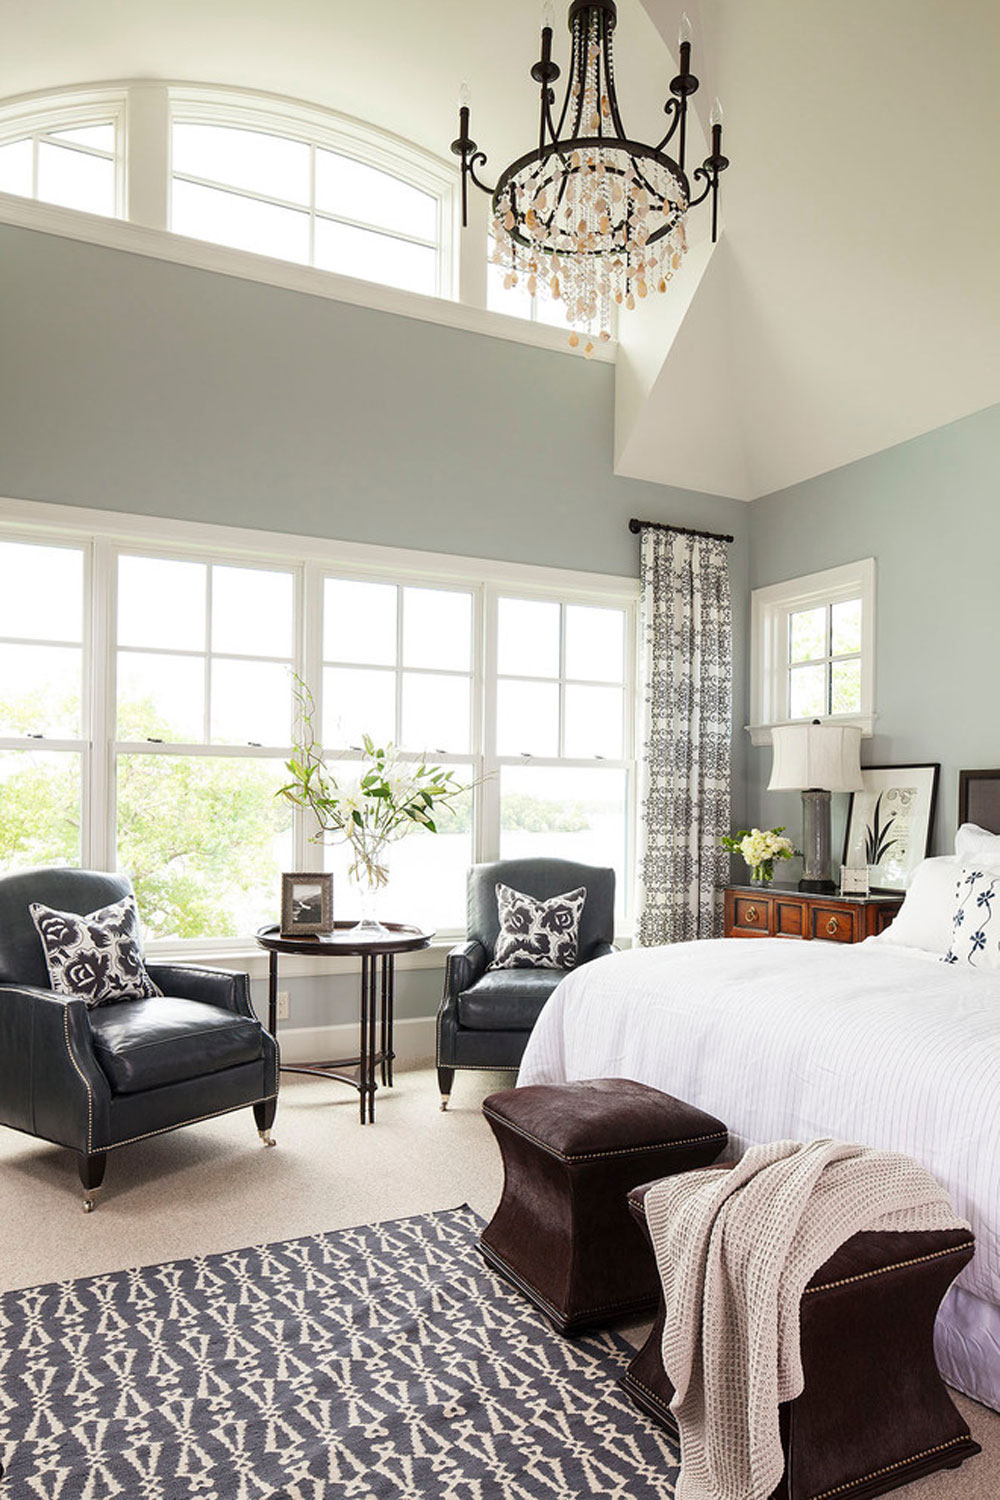 Palmer Point Road Residence 2 Master Bedroom By